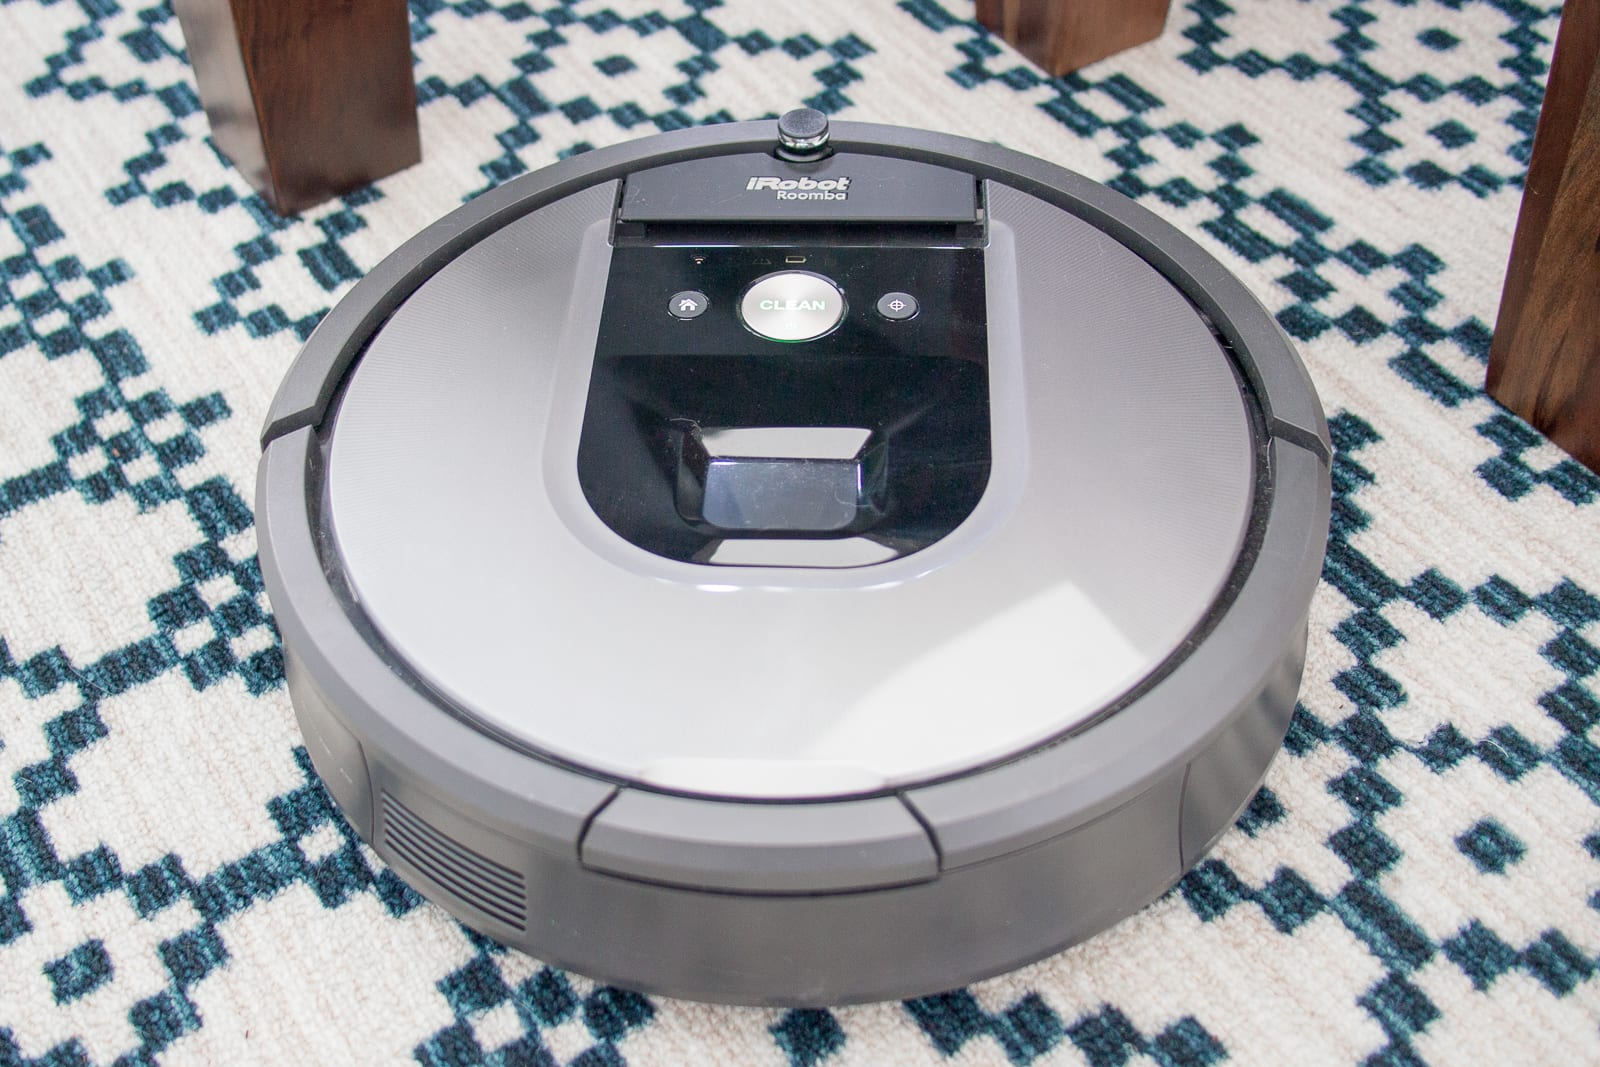 Sunsets are kryptonite to some fancy robot vacuums